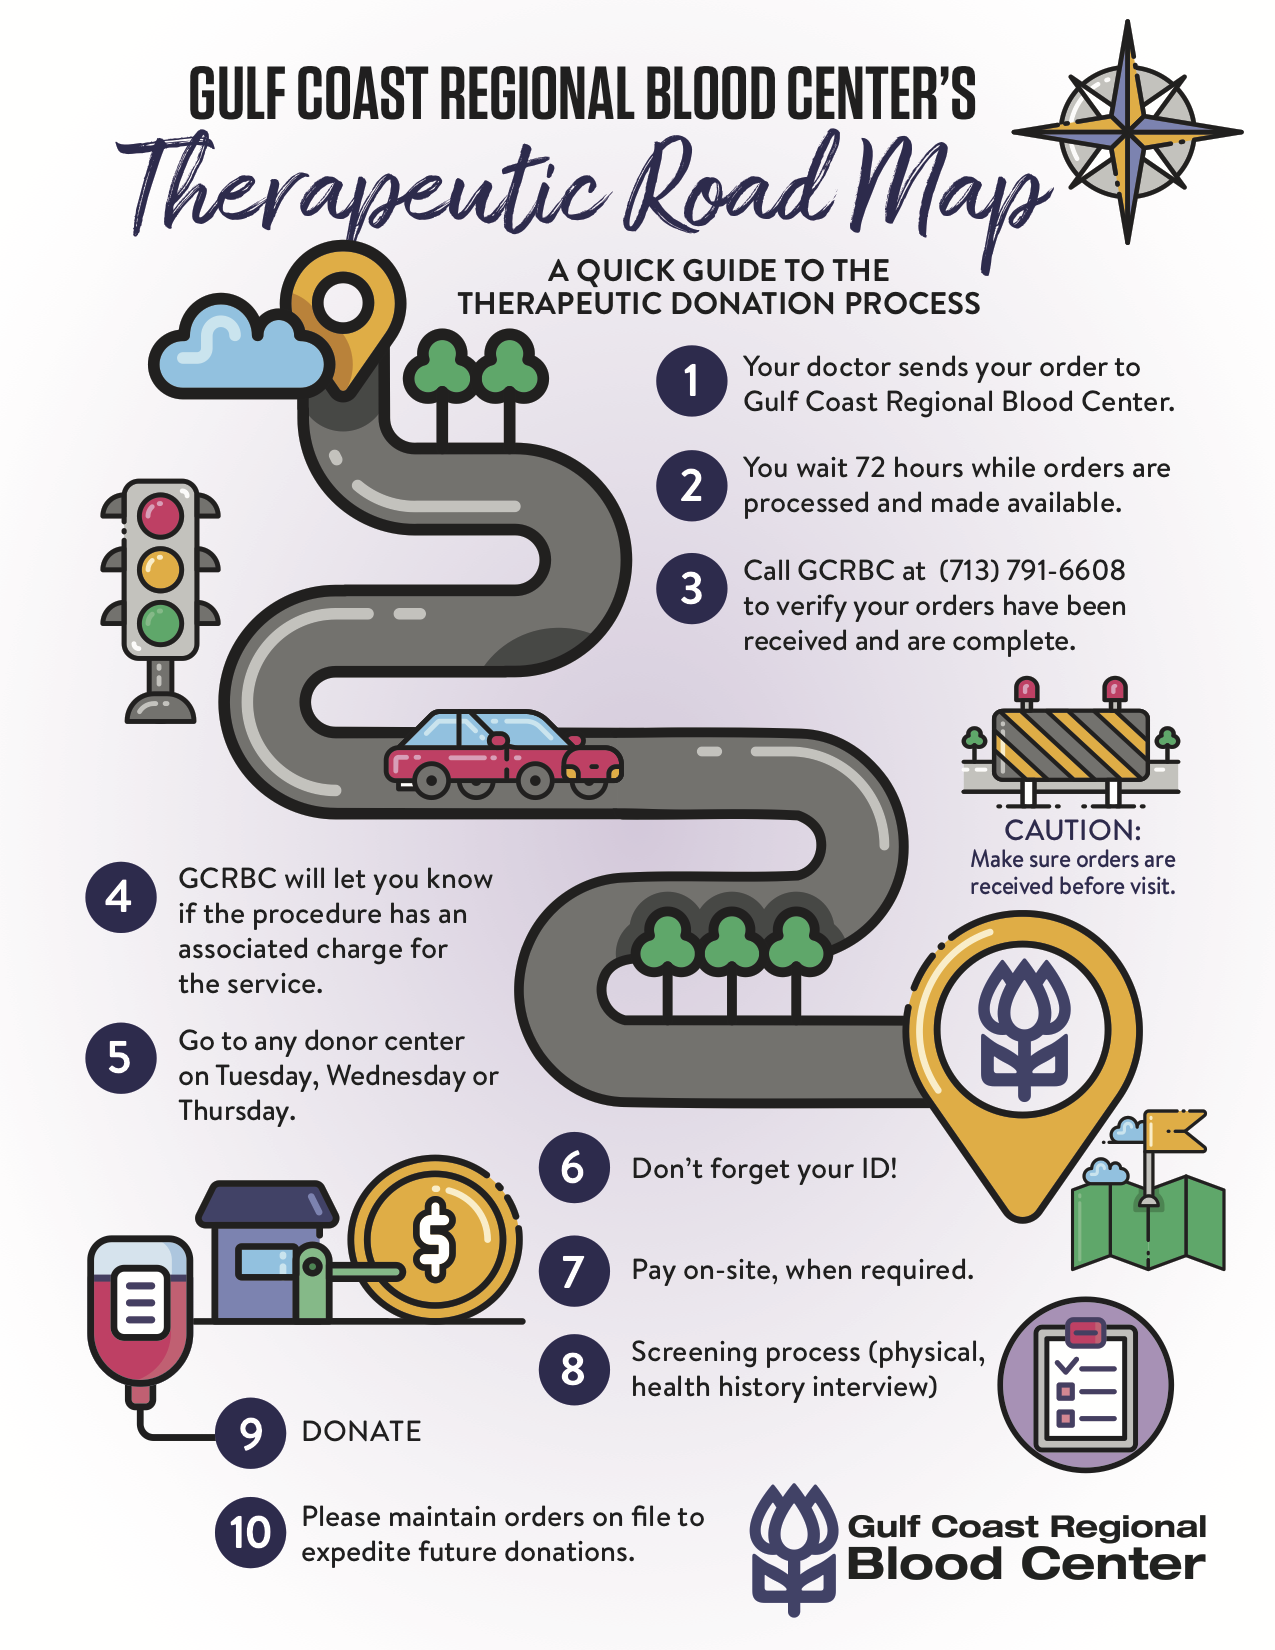 Therapeutic Road Map